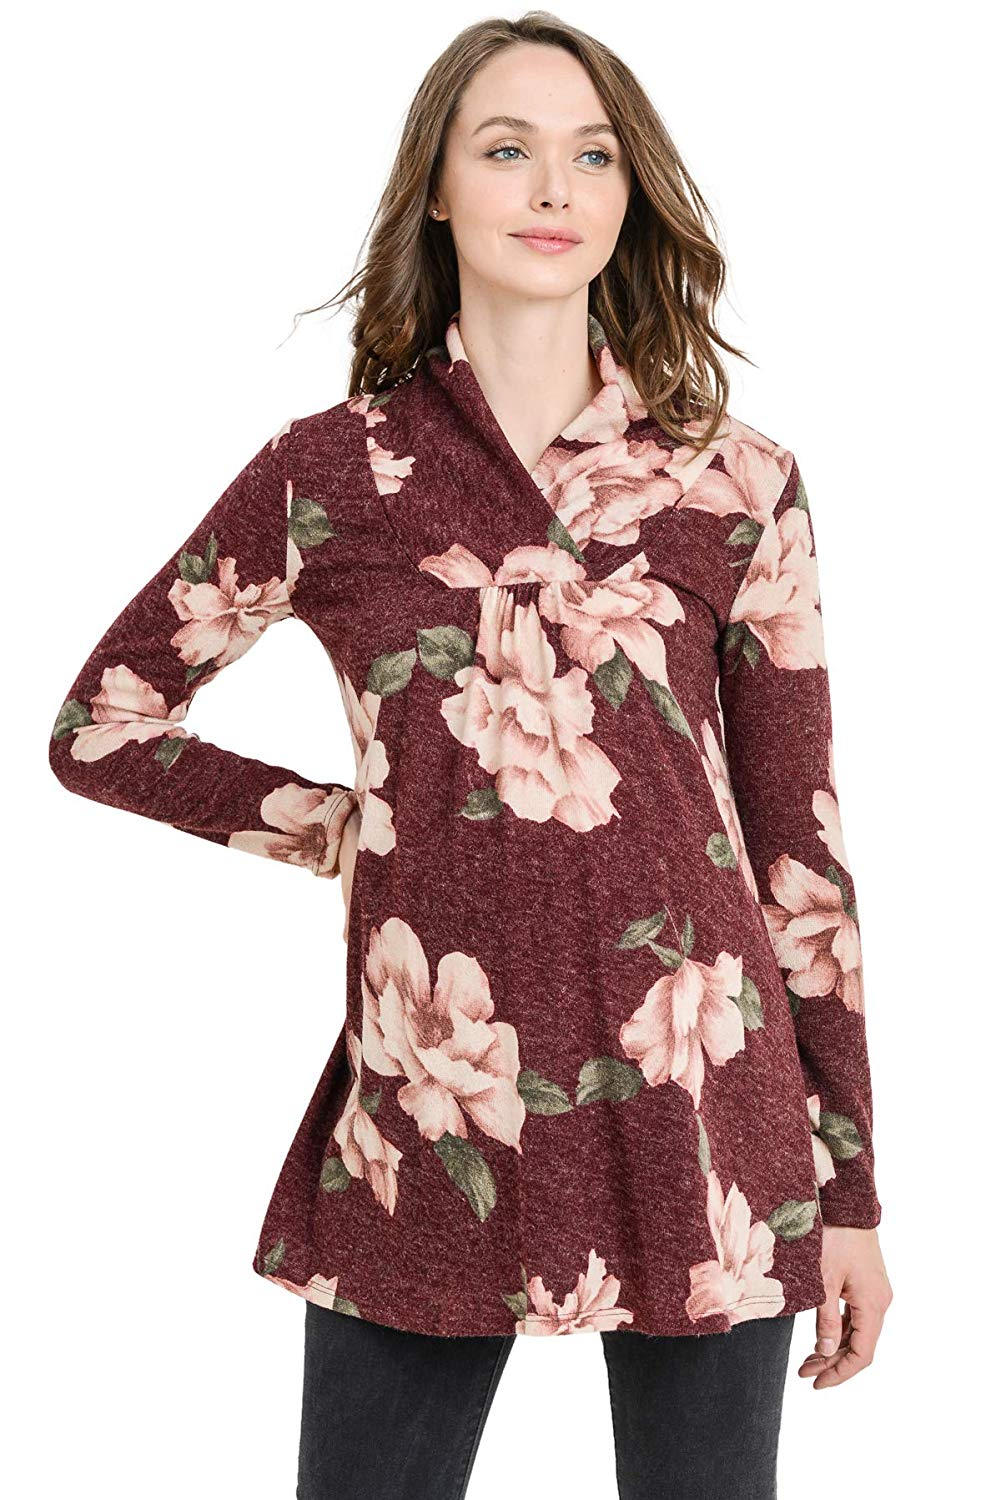 Floral Knit Maternity Tunic - Mommylicious